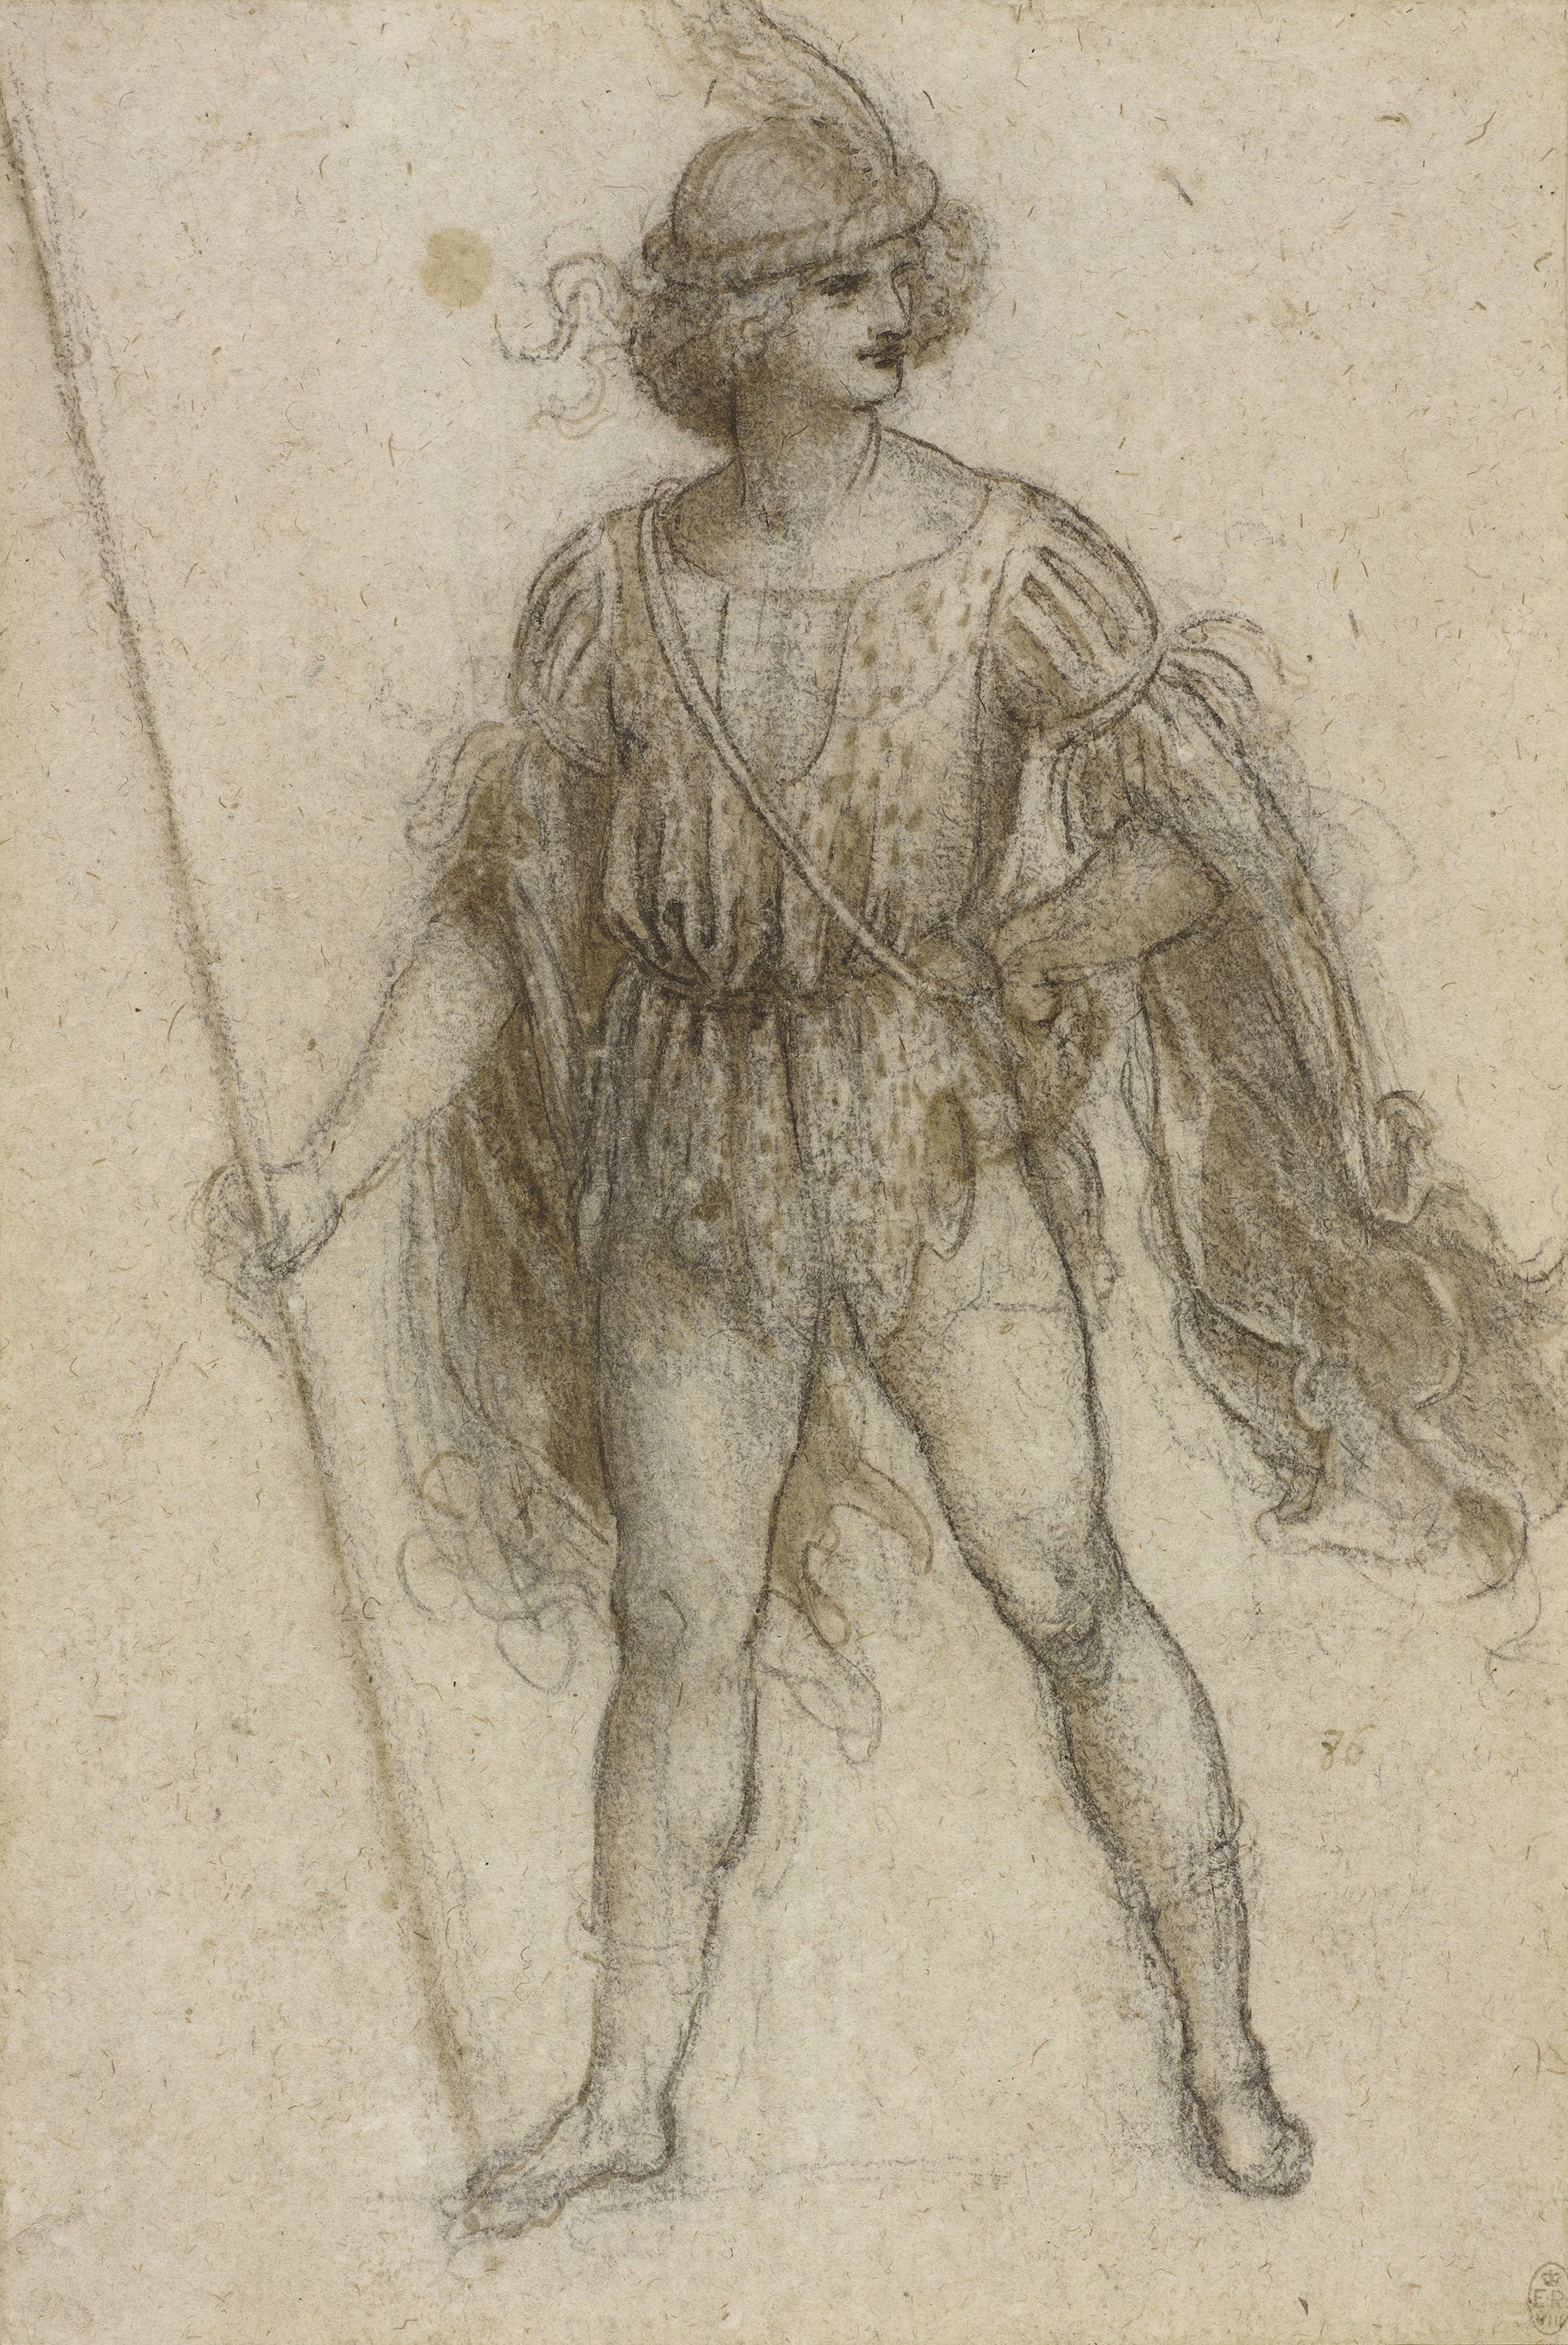 A masquerader as a lansquenet c1517-18  In 1516 Leonardo travelled to France to take up a position as court artist to Francis I. In his last years he worked as a designer rather than an executant, and he seems to have abandoned his scientific studies almost entirely. Among his many designs were costumes for the king's entertainments, for letters from the French court describe dress that corresponds closely with Leonardo's drawings, featuring a great richness and layering of textiles, with ribbons, plumes, fringes, spotted furs, and quilted sleeves and breeches. Although such ephemeral designs may now seem trivial, Leonardo clearly relished the opportunity to indulge his love of decorative elegance. During his last two-and-a-half years in France he had a secure living and an appreciative patron, but when he died on 2 May 1519, aged 67, so much of his life's work remained incomplete, to be left to posterity only through his drawings.  National Museum Cardiff, £5, 10% off in shop, café and restaurant with National Art Pass -